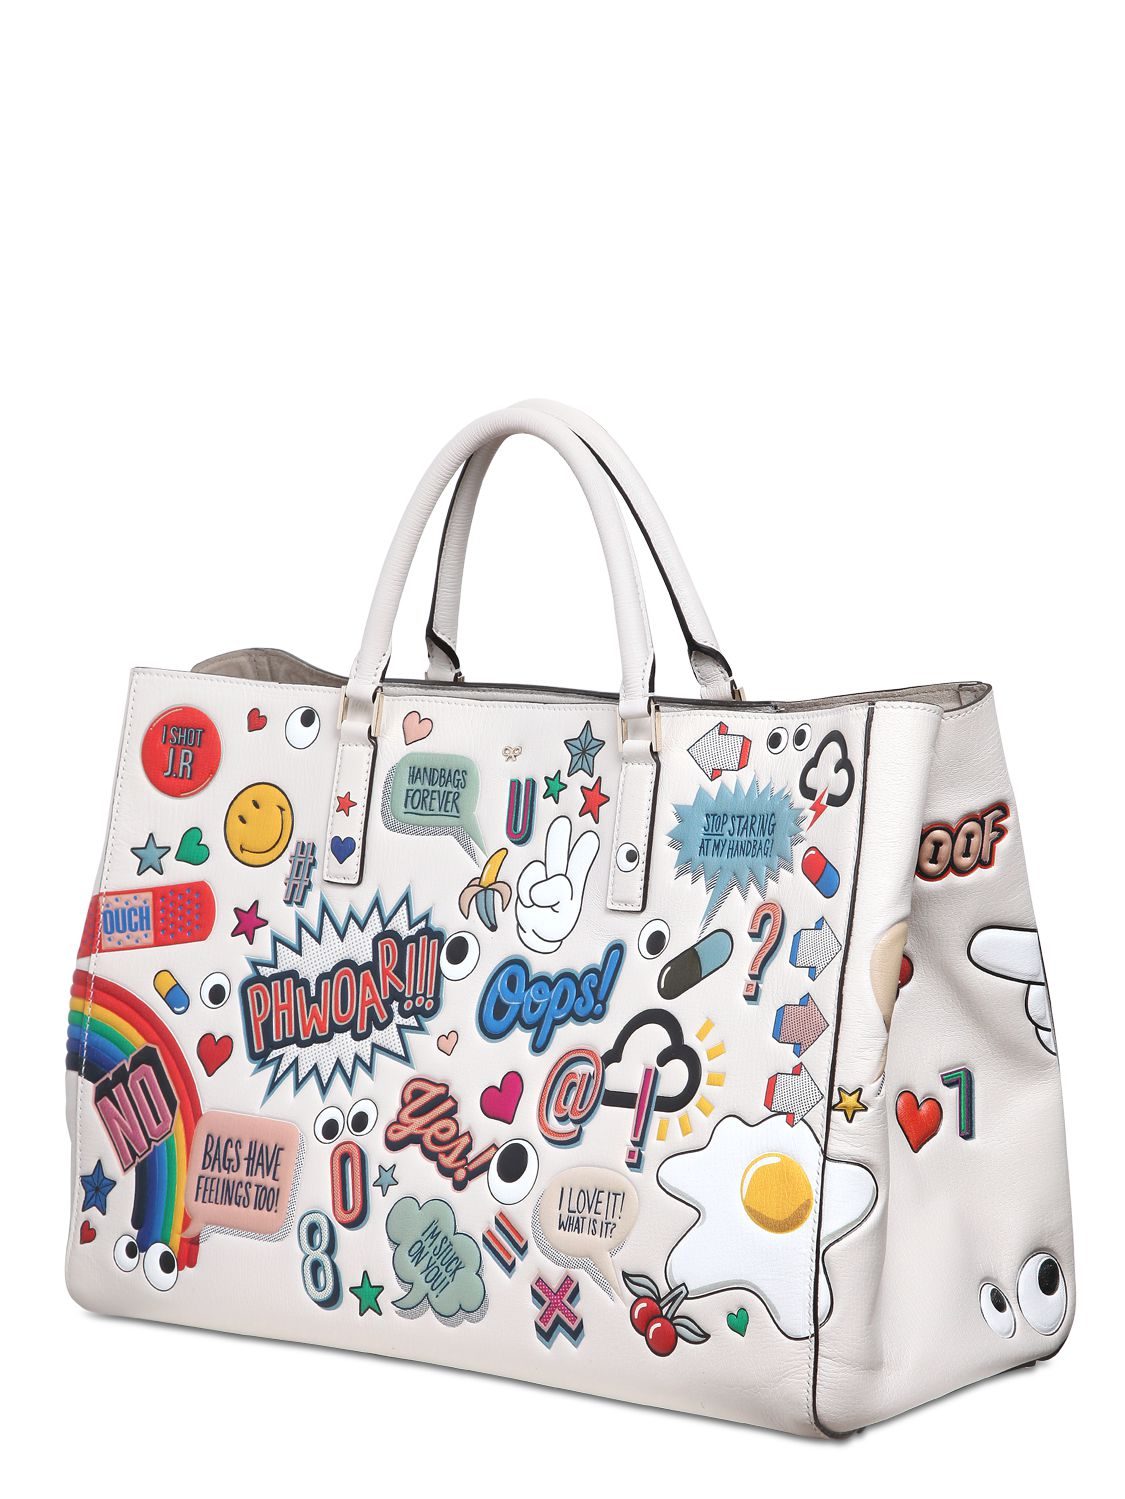 Anya hindmarch Sticker Tote Bag in White